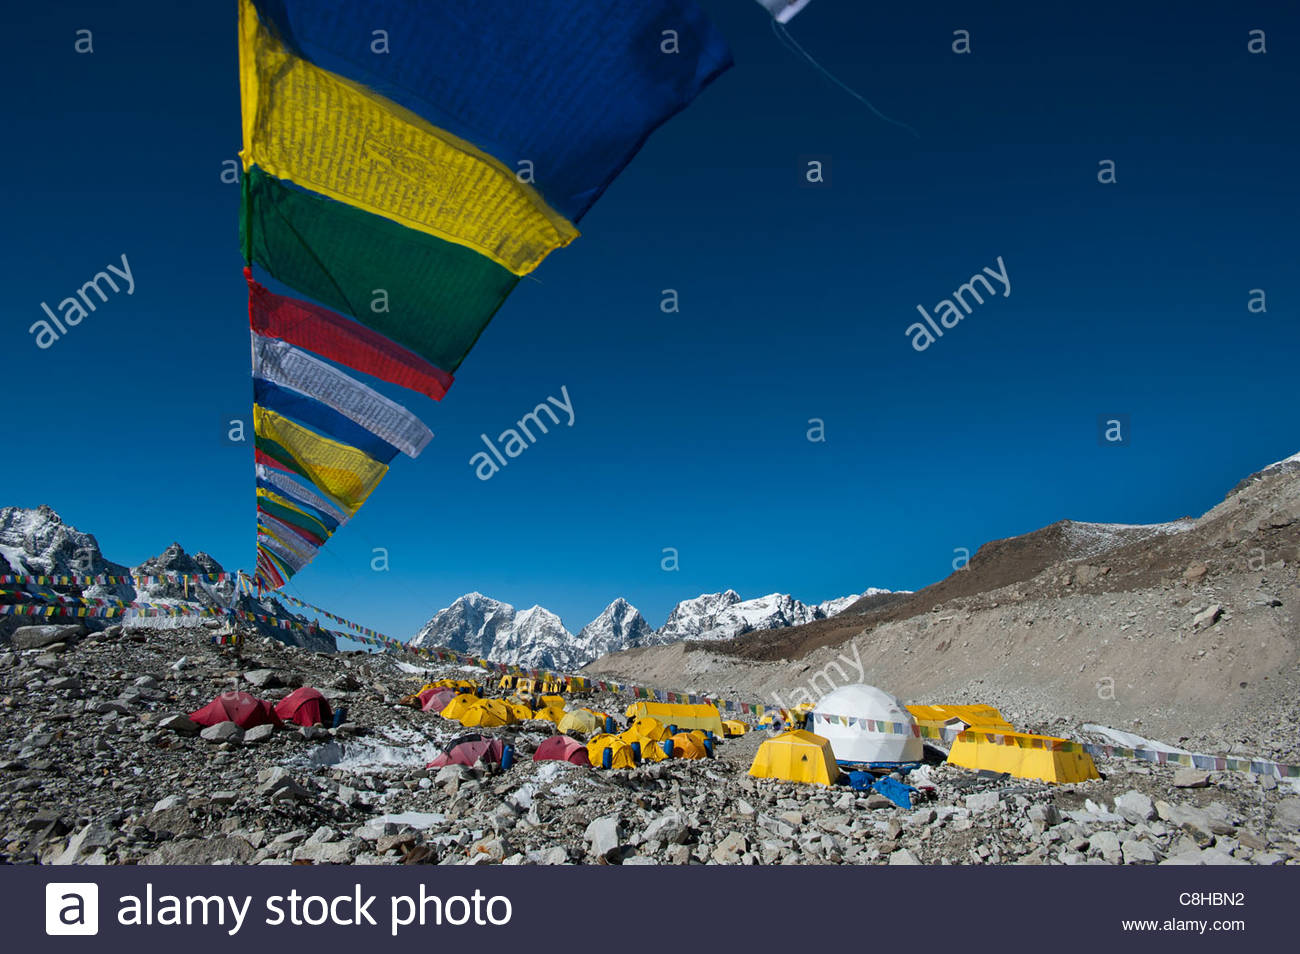 Prayer flags adorn Everest base camp - Stock Image